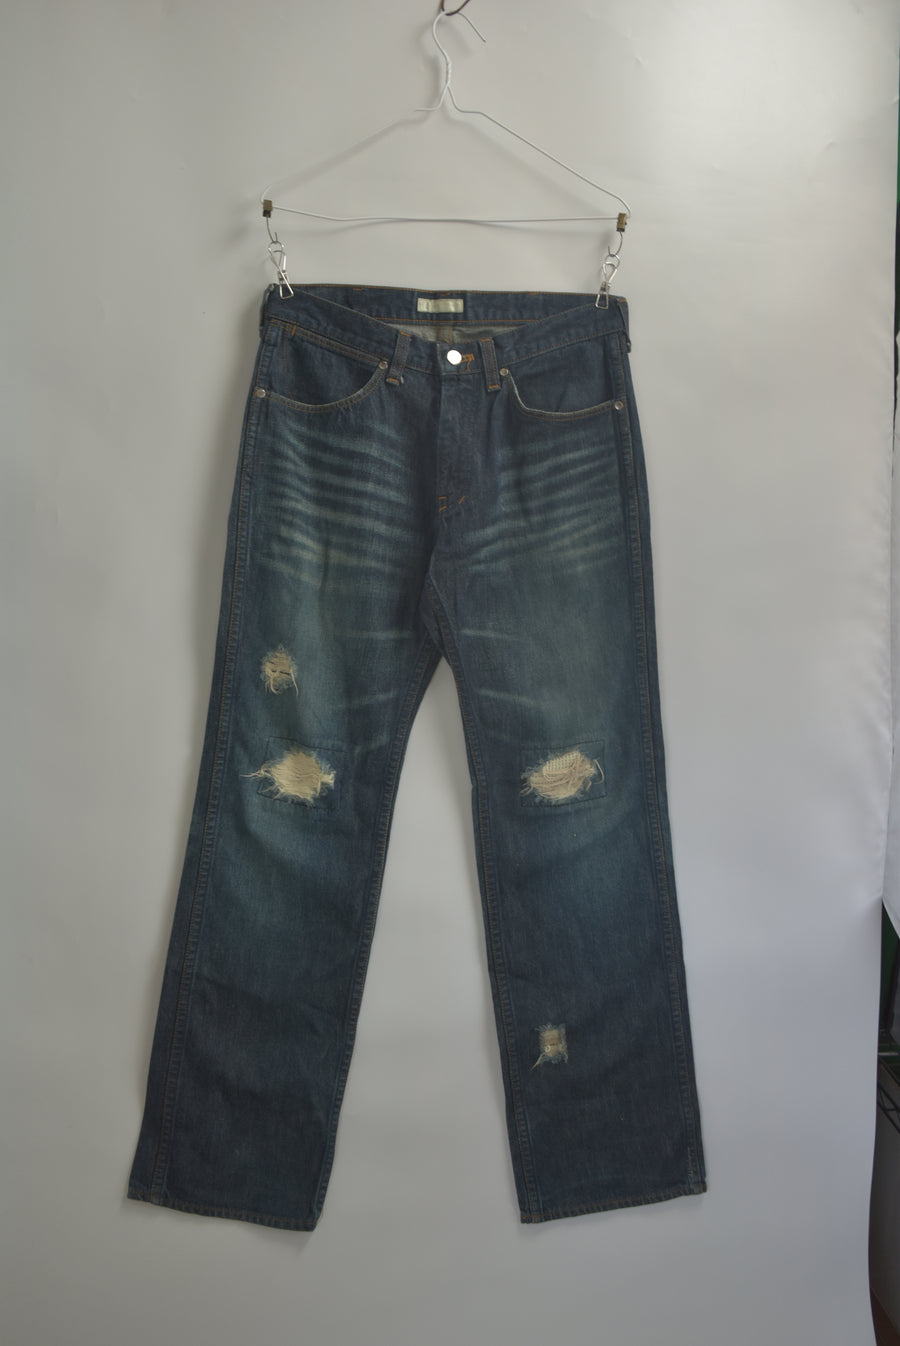 NUMBERNINE / Damege Denim Pants / 8182 - 0703 64